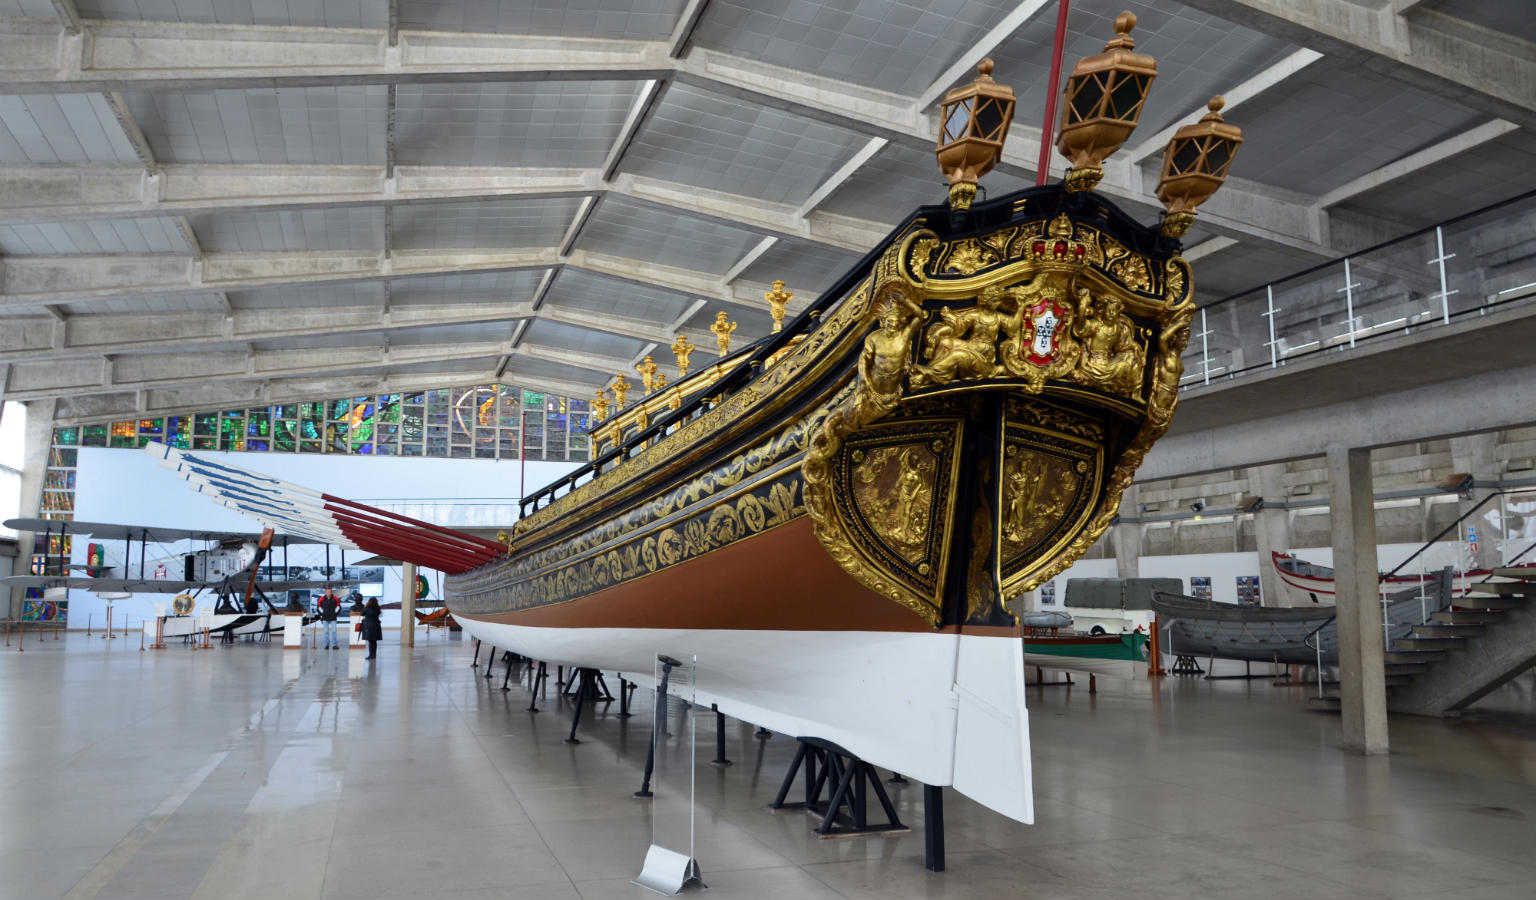 The back of a royal barge in the National Museum of Royal Barges in Bangkok